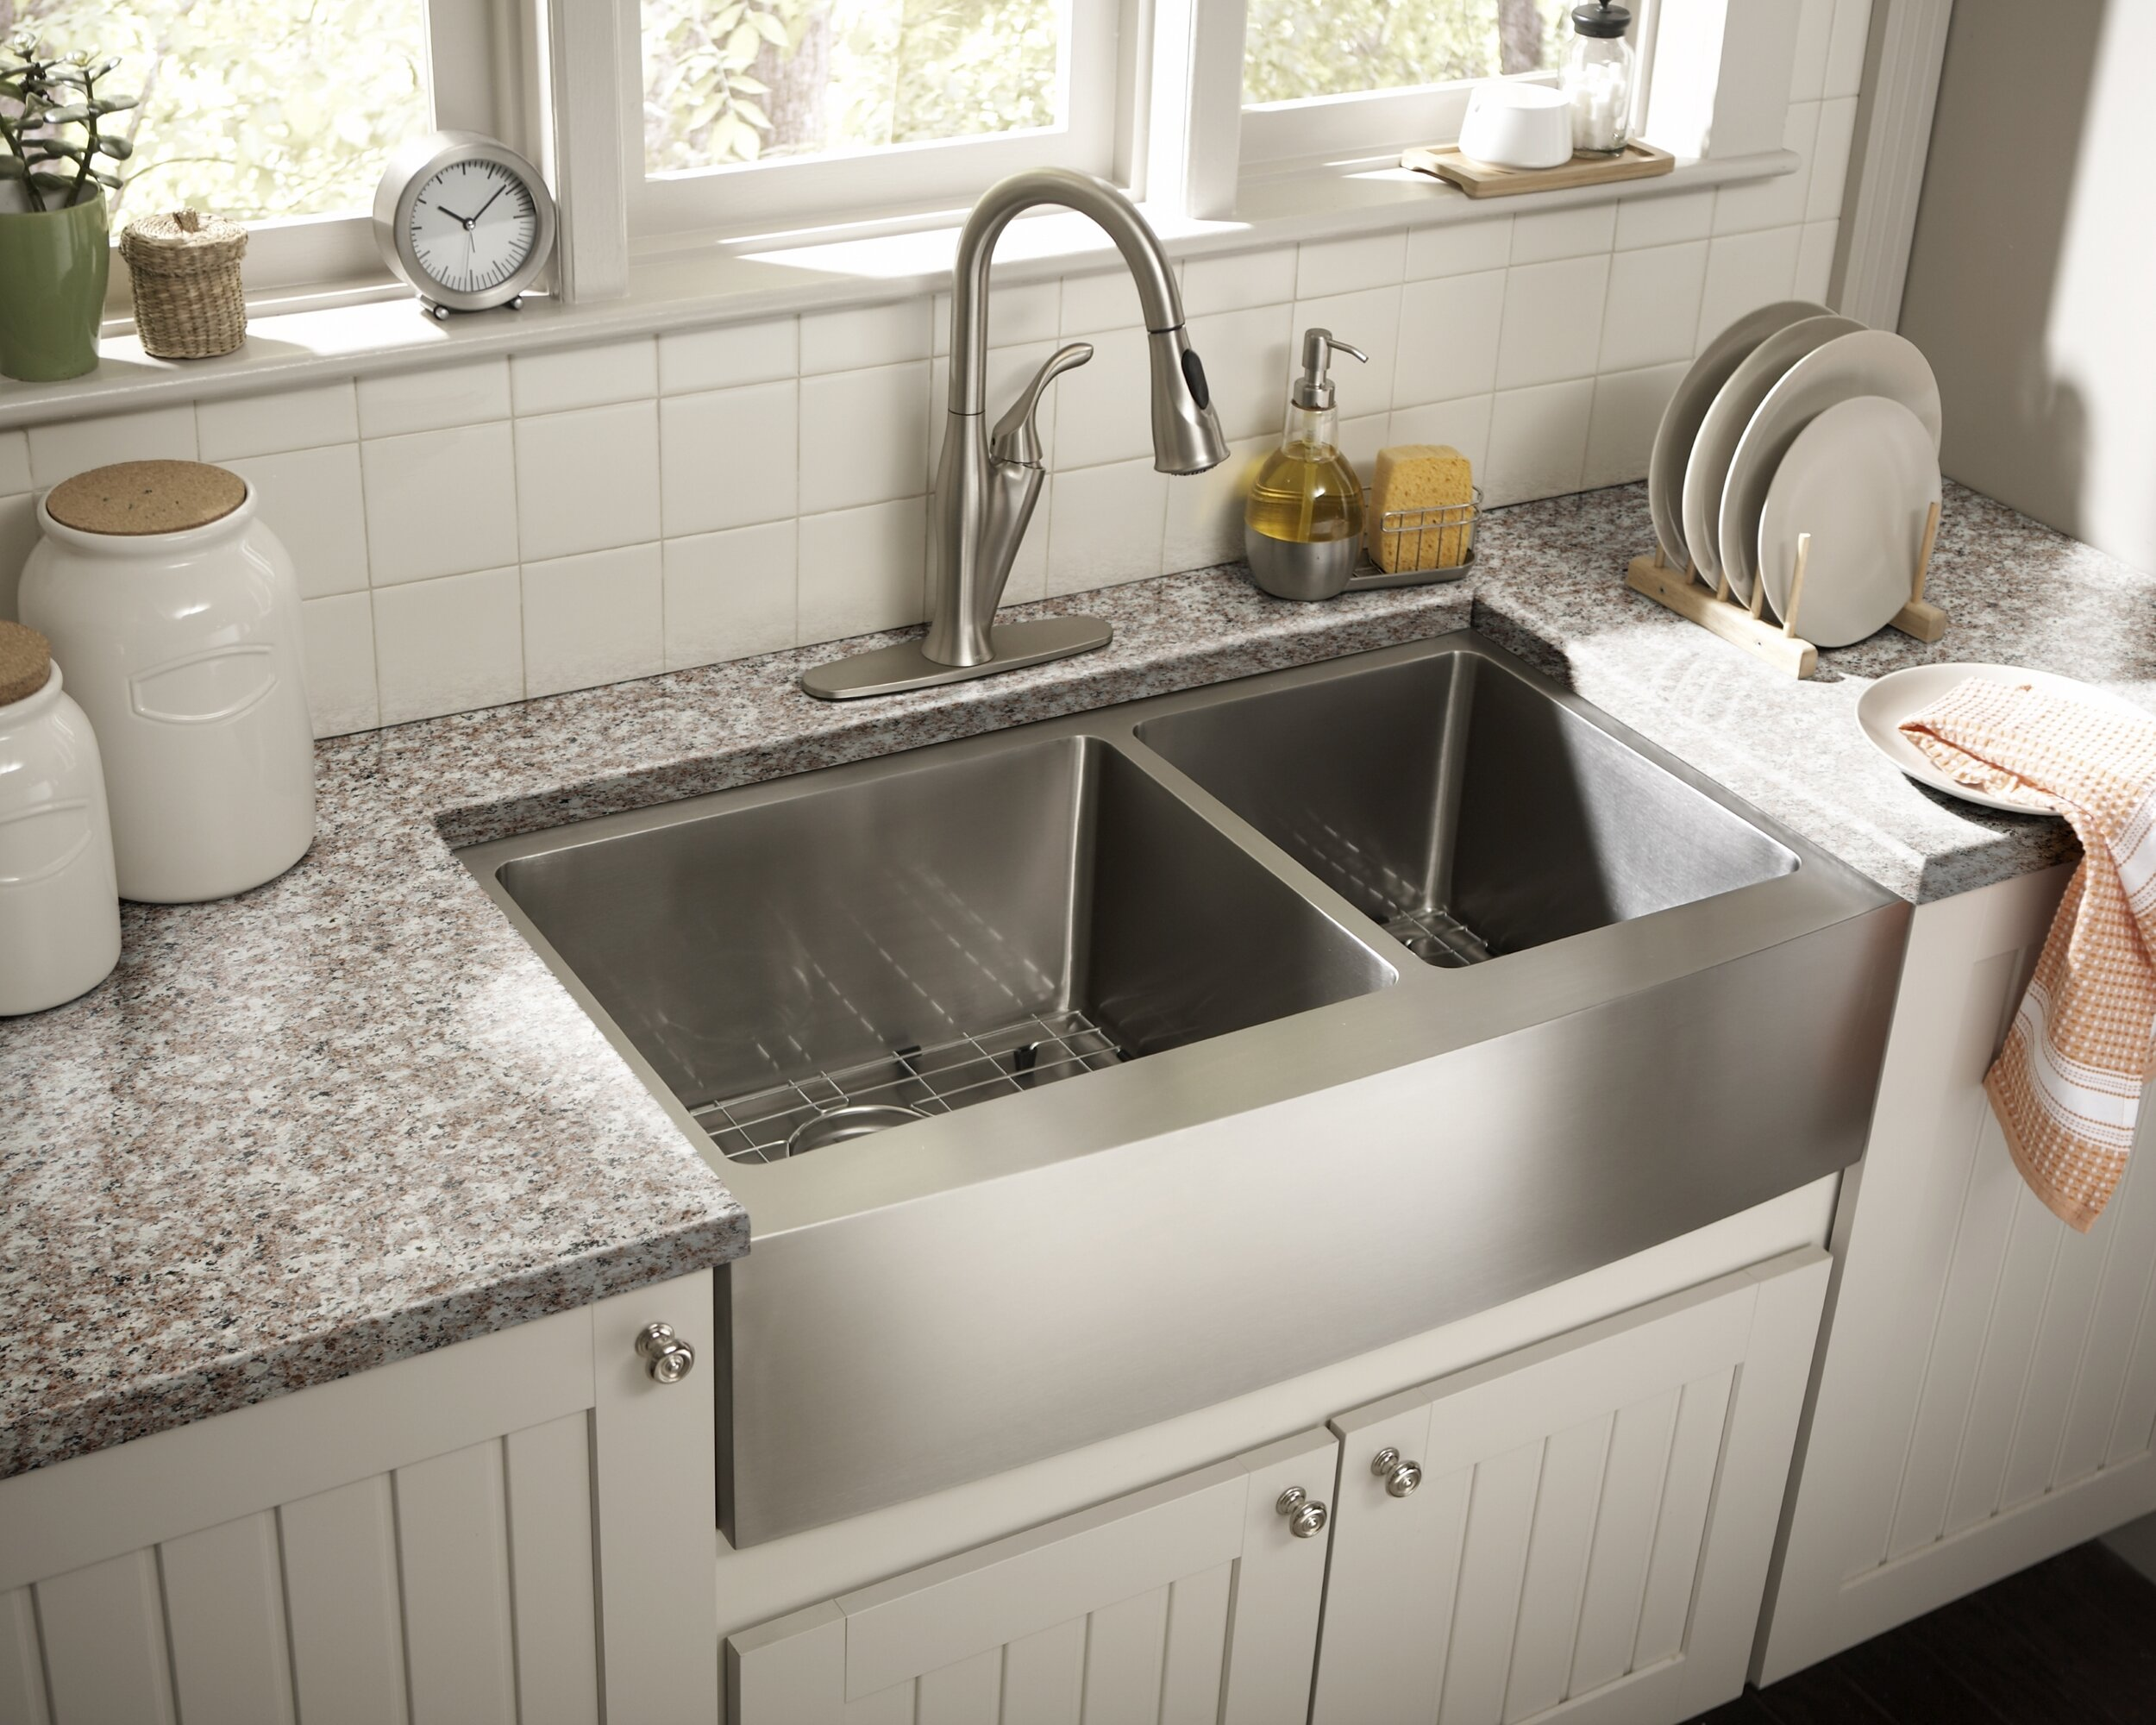 35 7 8 in 60 40 bowl apron front 16 ga stainless steel kitchen sink cahaba designs